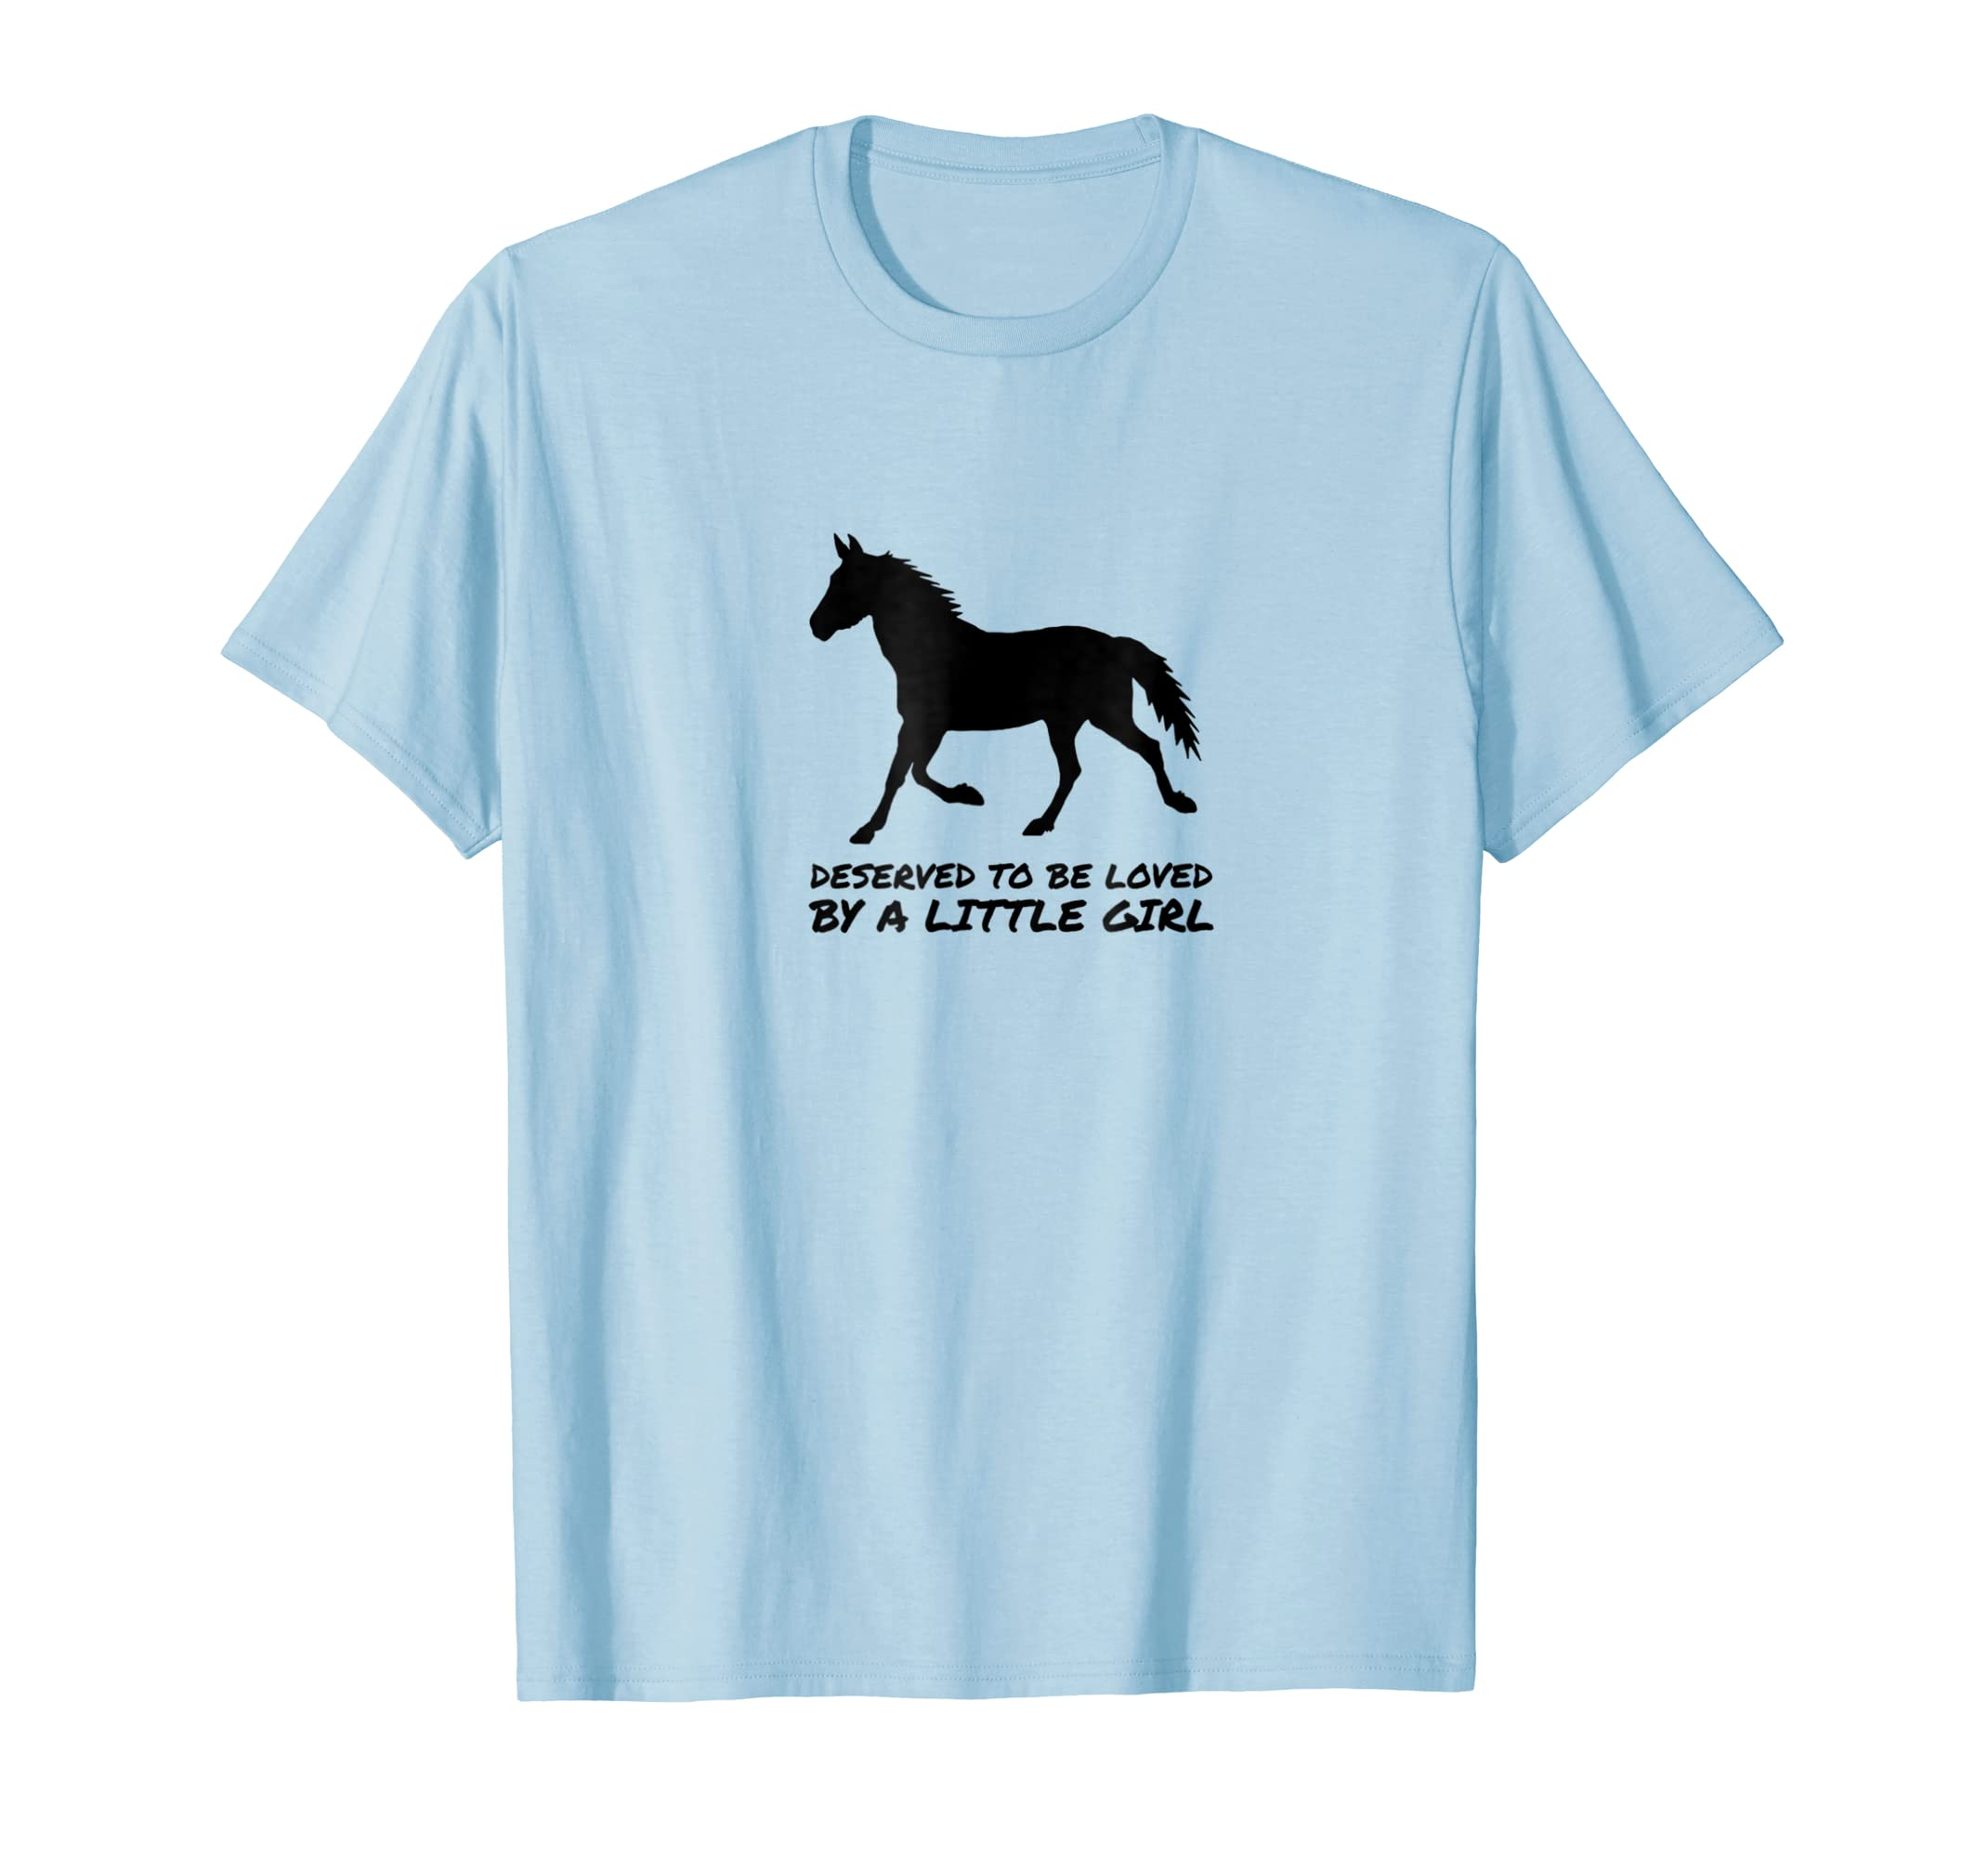 Horse Riding T-Shirt, Deserved To Be Loved By A Little Girl-AZP